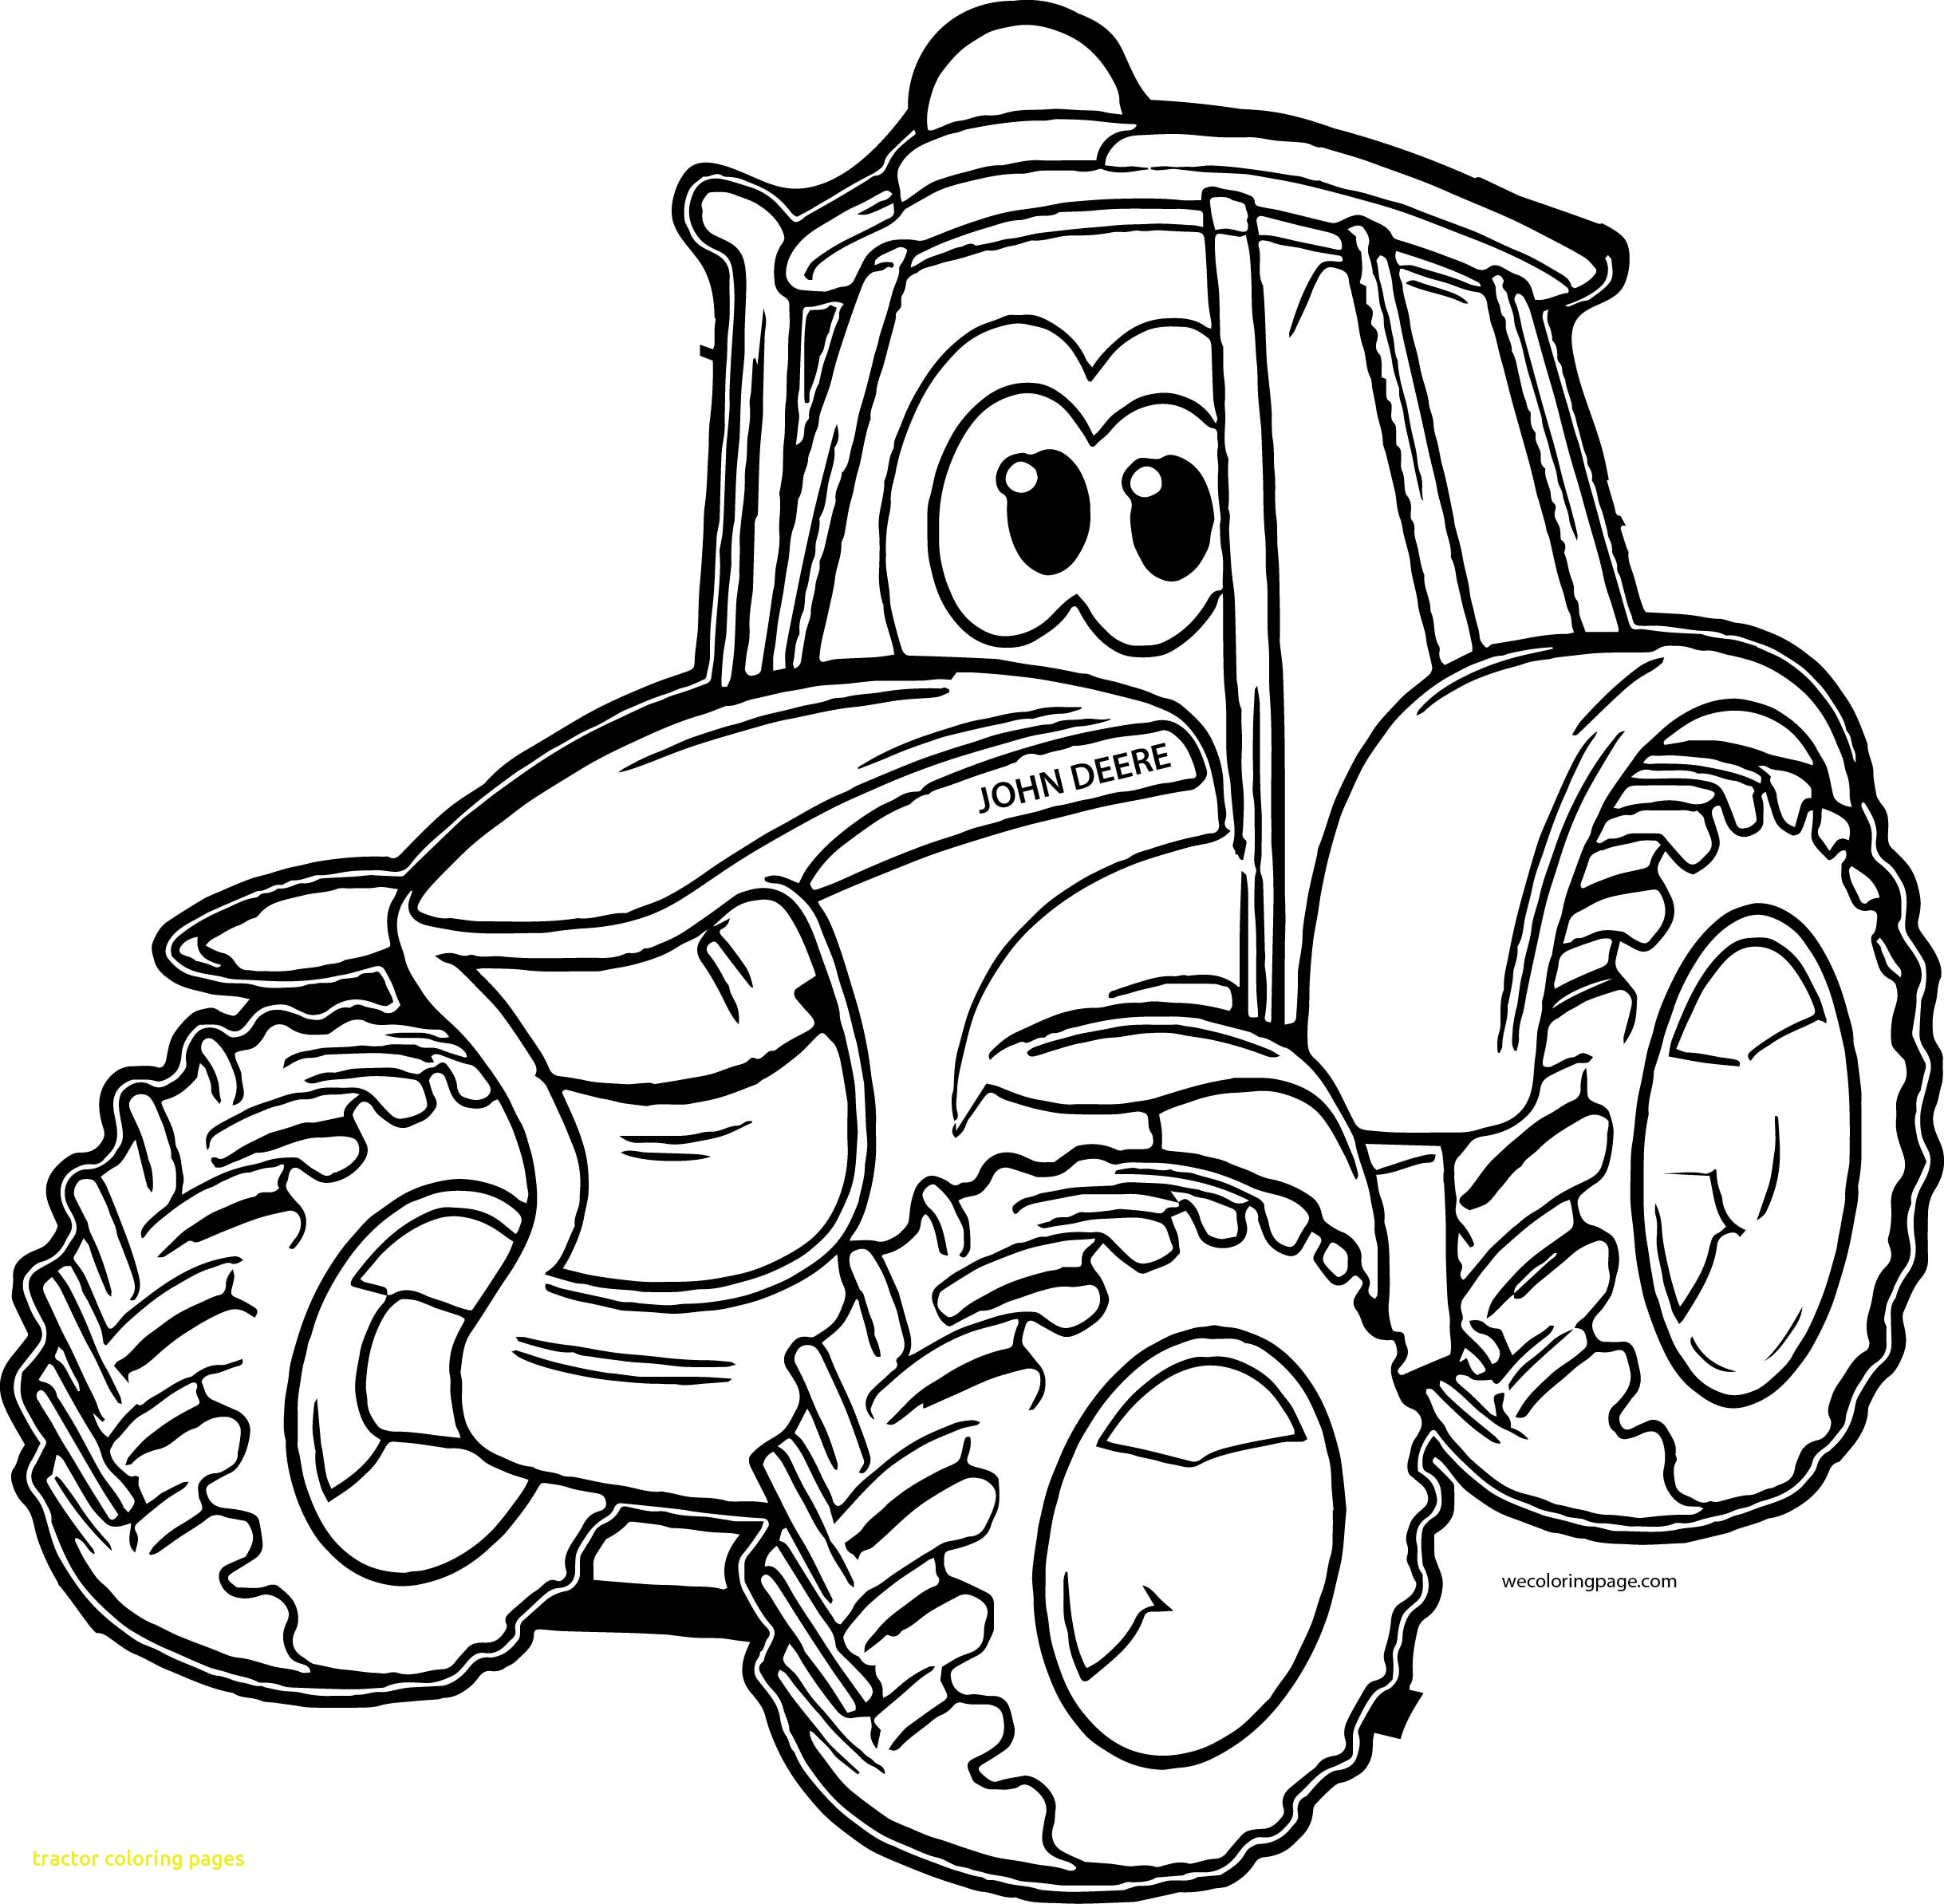 2437x2387 Tractor Coloring Pages Top 25 Free Printable Online Unknown